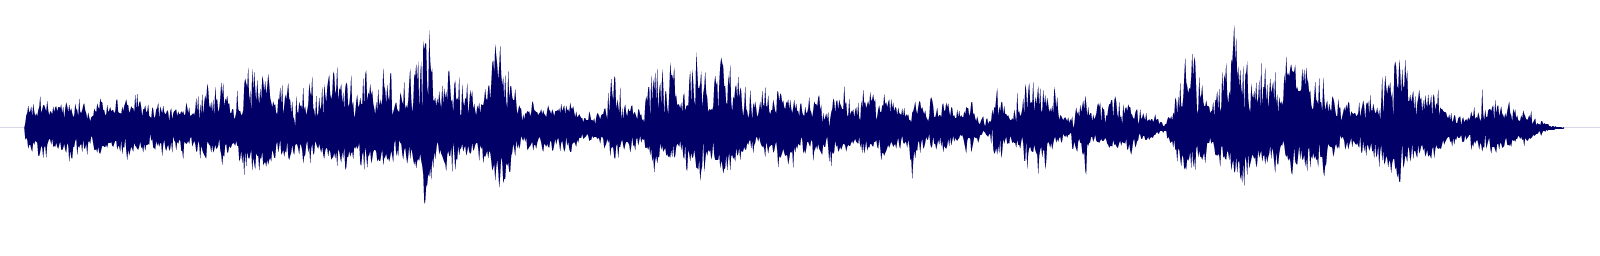 waveform of track #97140